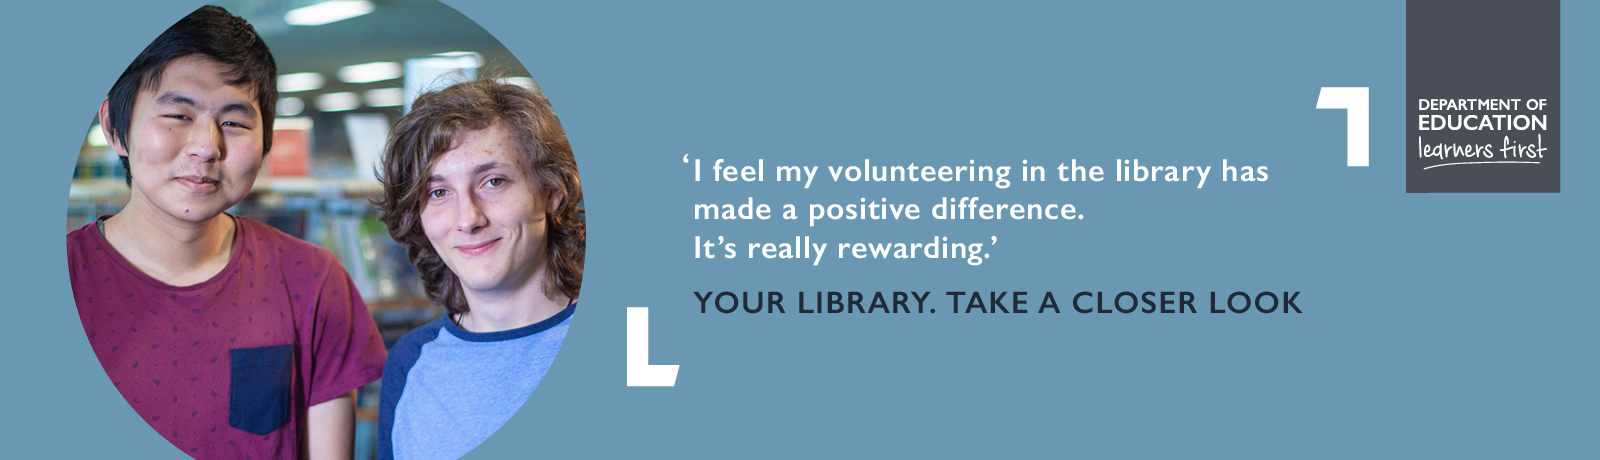 I feel my volunteering in the library has made a positive difference. It's really rewarding.